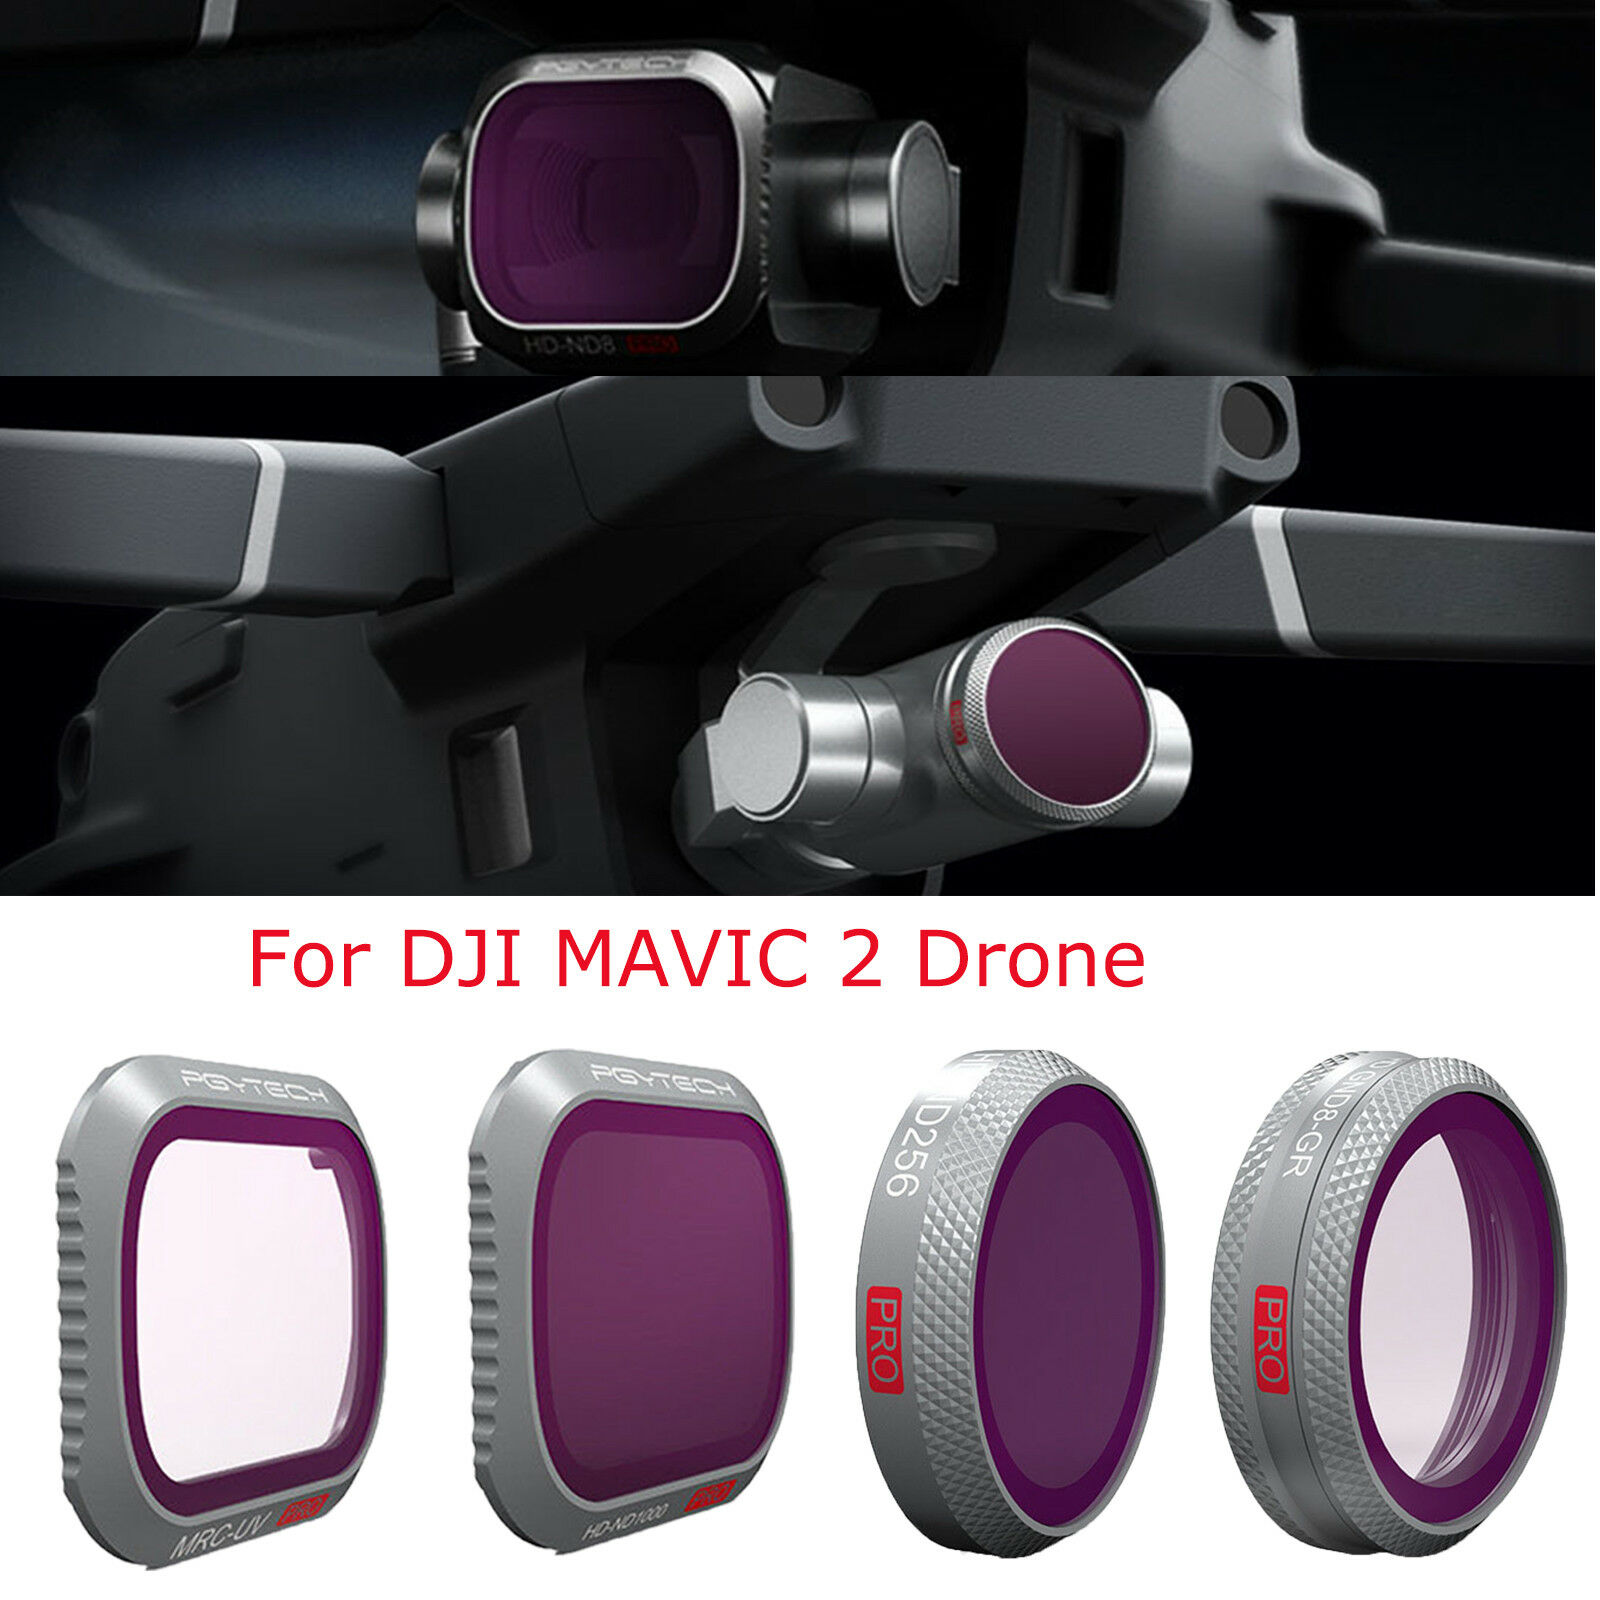 PGYTECH Zoom Pro Camera Lens Filters Parts Accessories Kit for DJI MAVIC 2 Drone